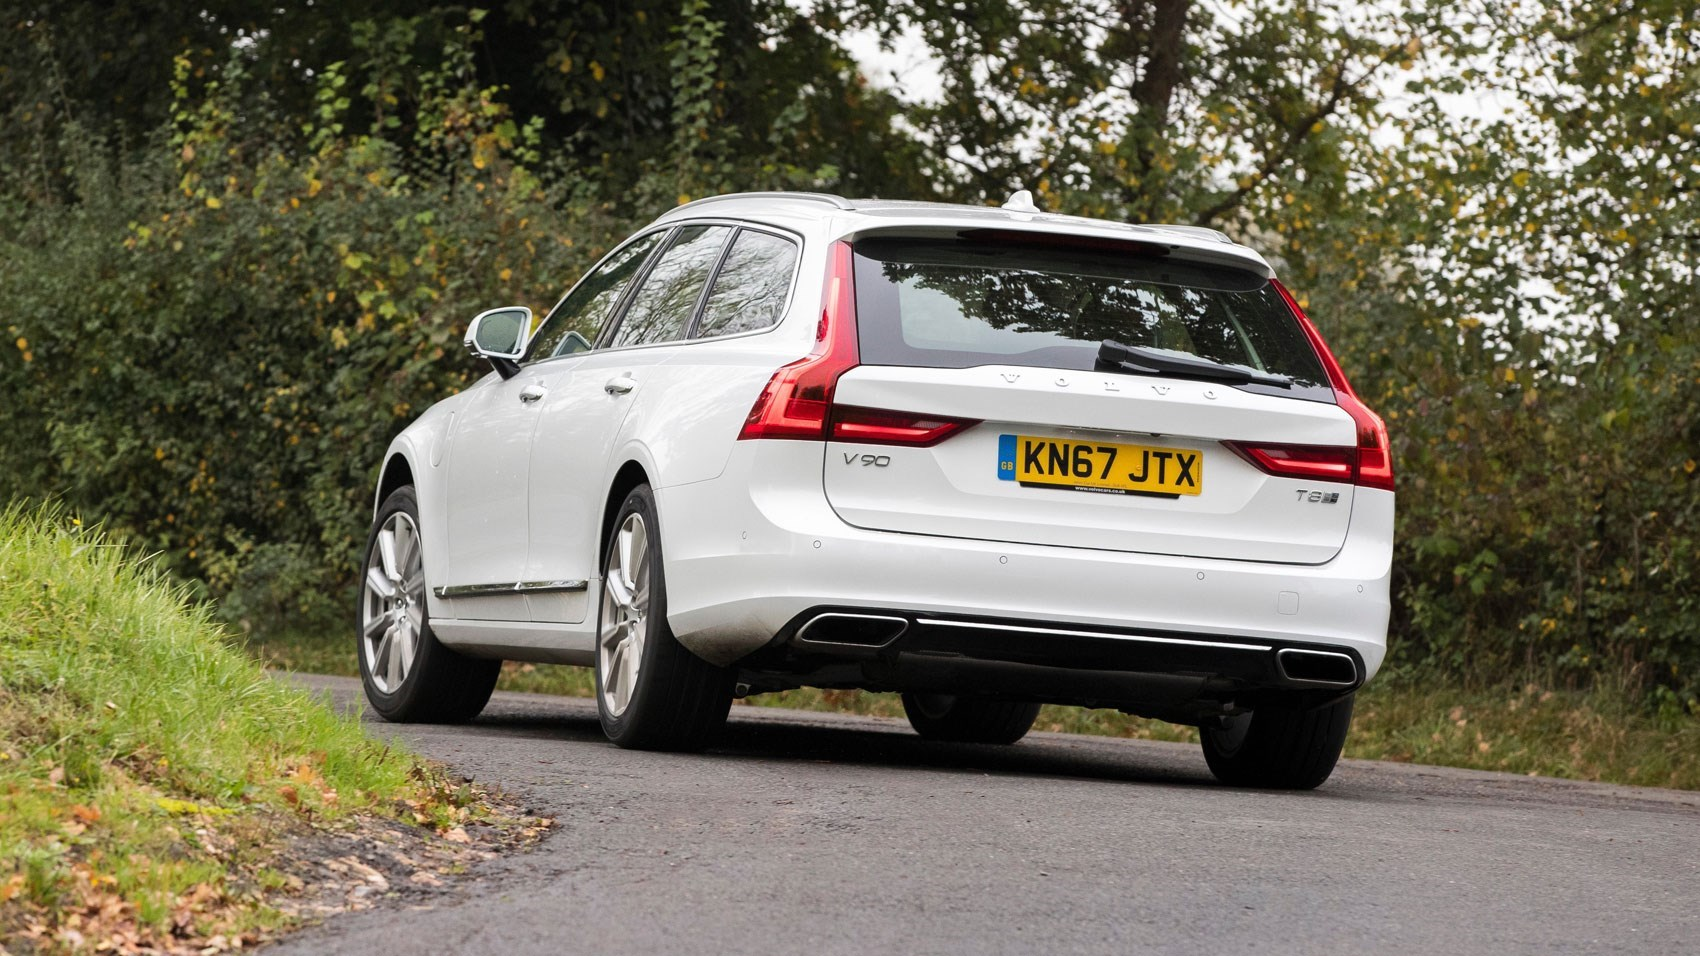 Volvo is introducing a 112mph speed limiter to all its new cars